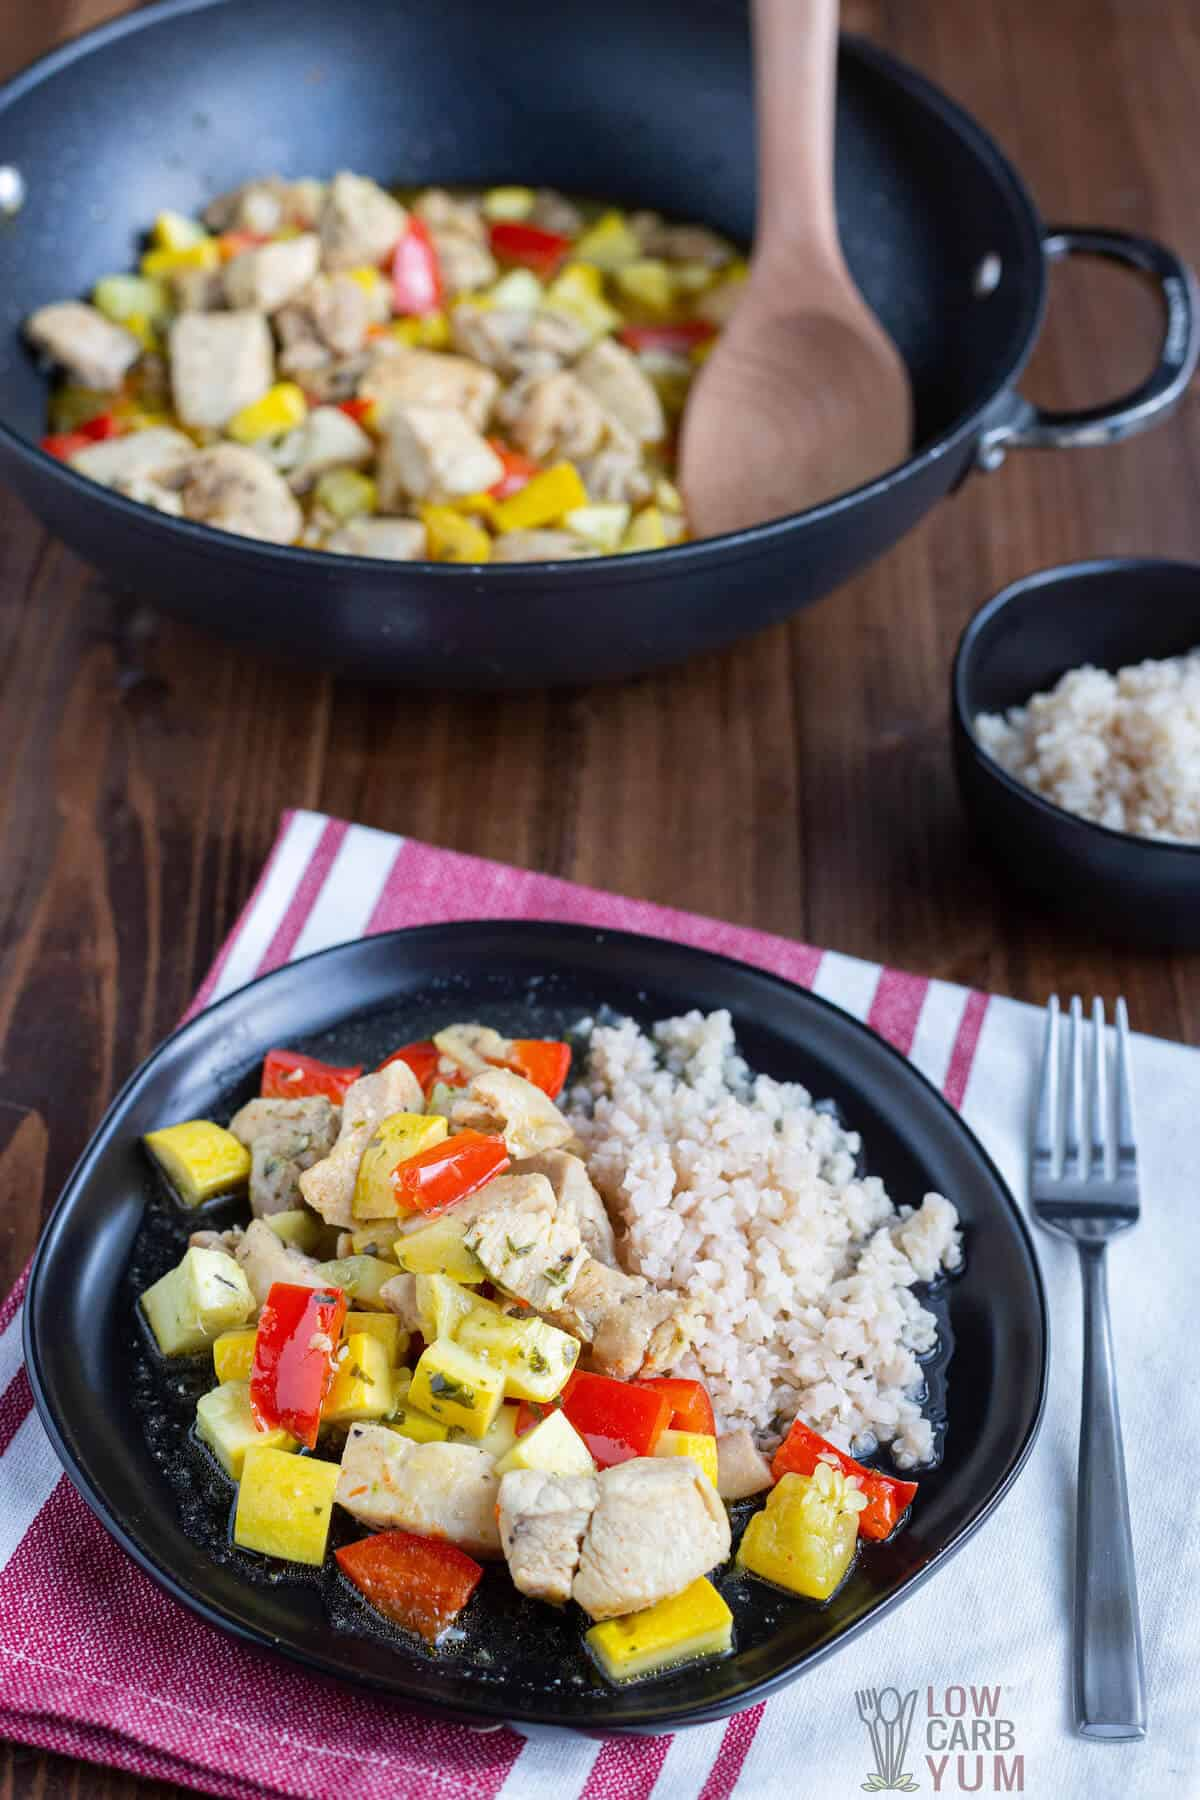 Low carb chicken stir fry without soy sauce